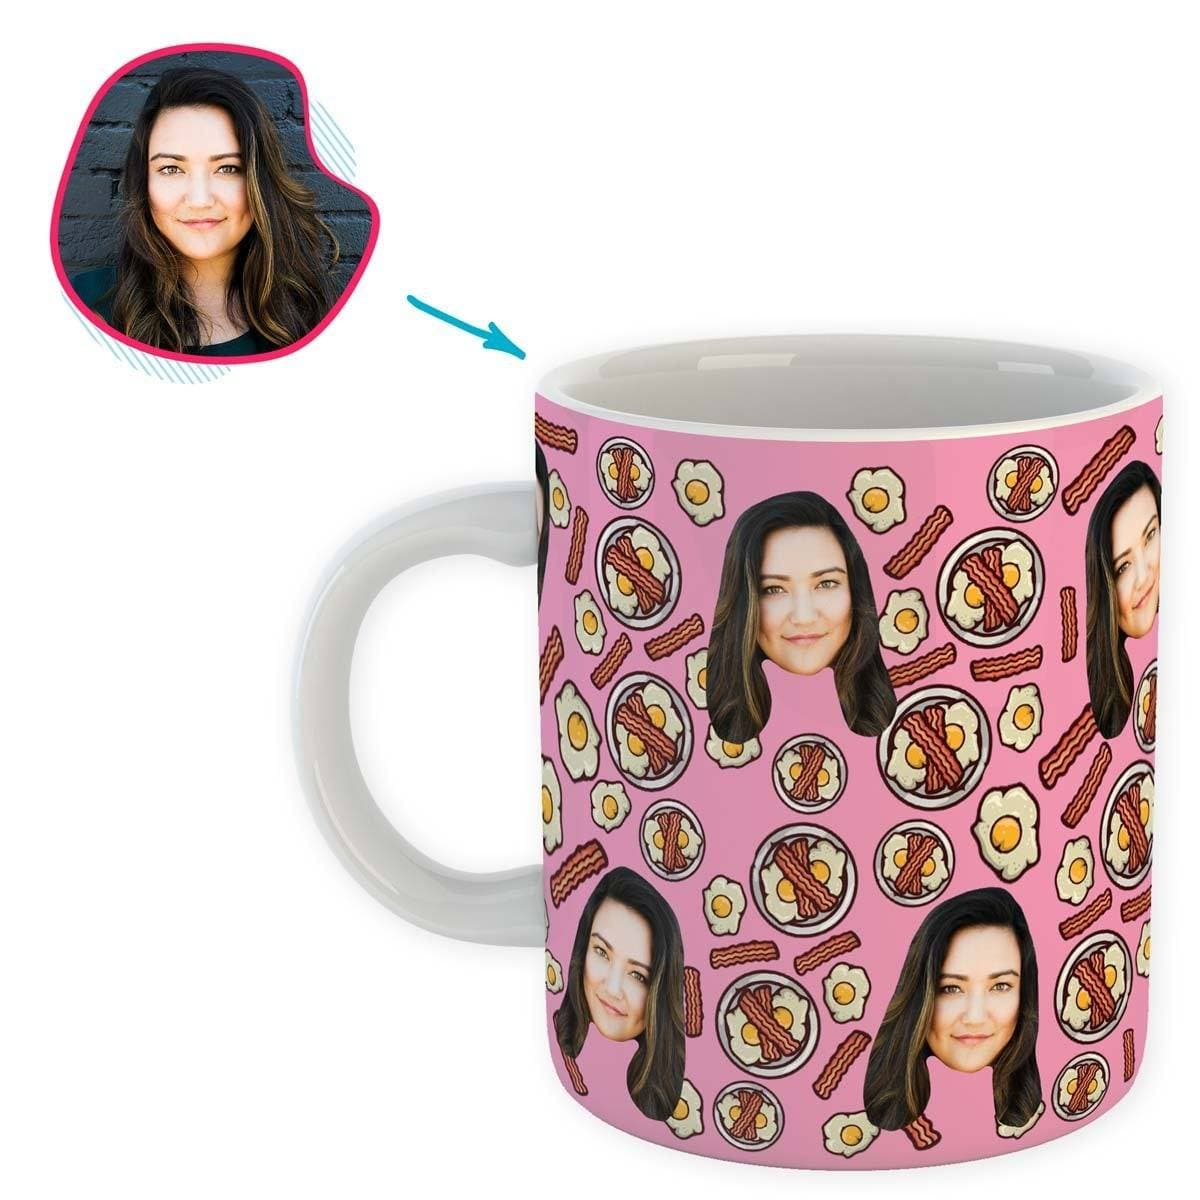 pink Bacon and Eggs mug personalized with photo of face printed on it